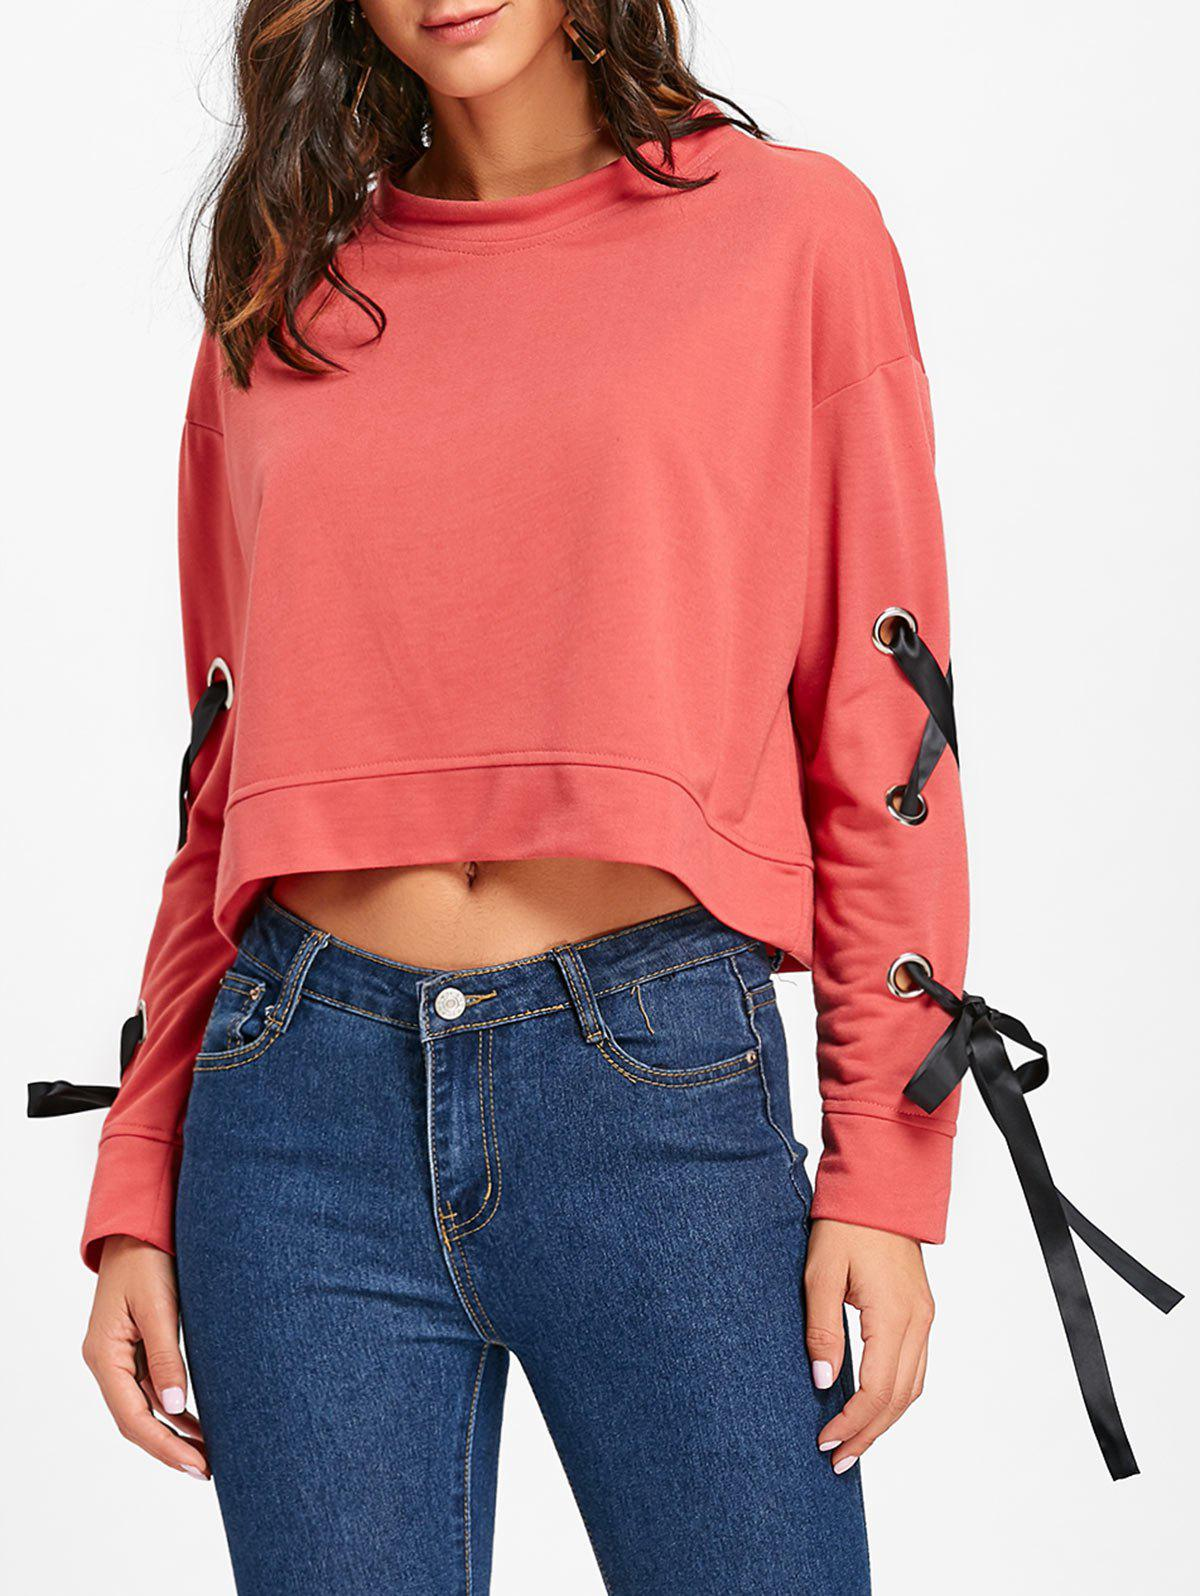 Lace-up Sleeve Crop Sweatshirt - RED S